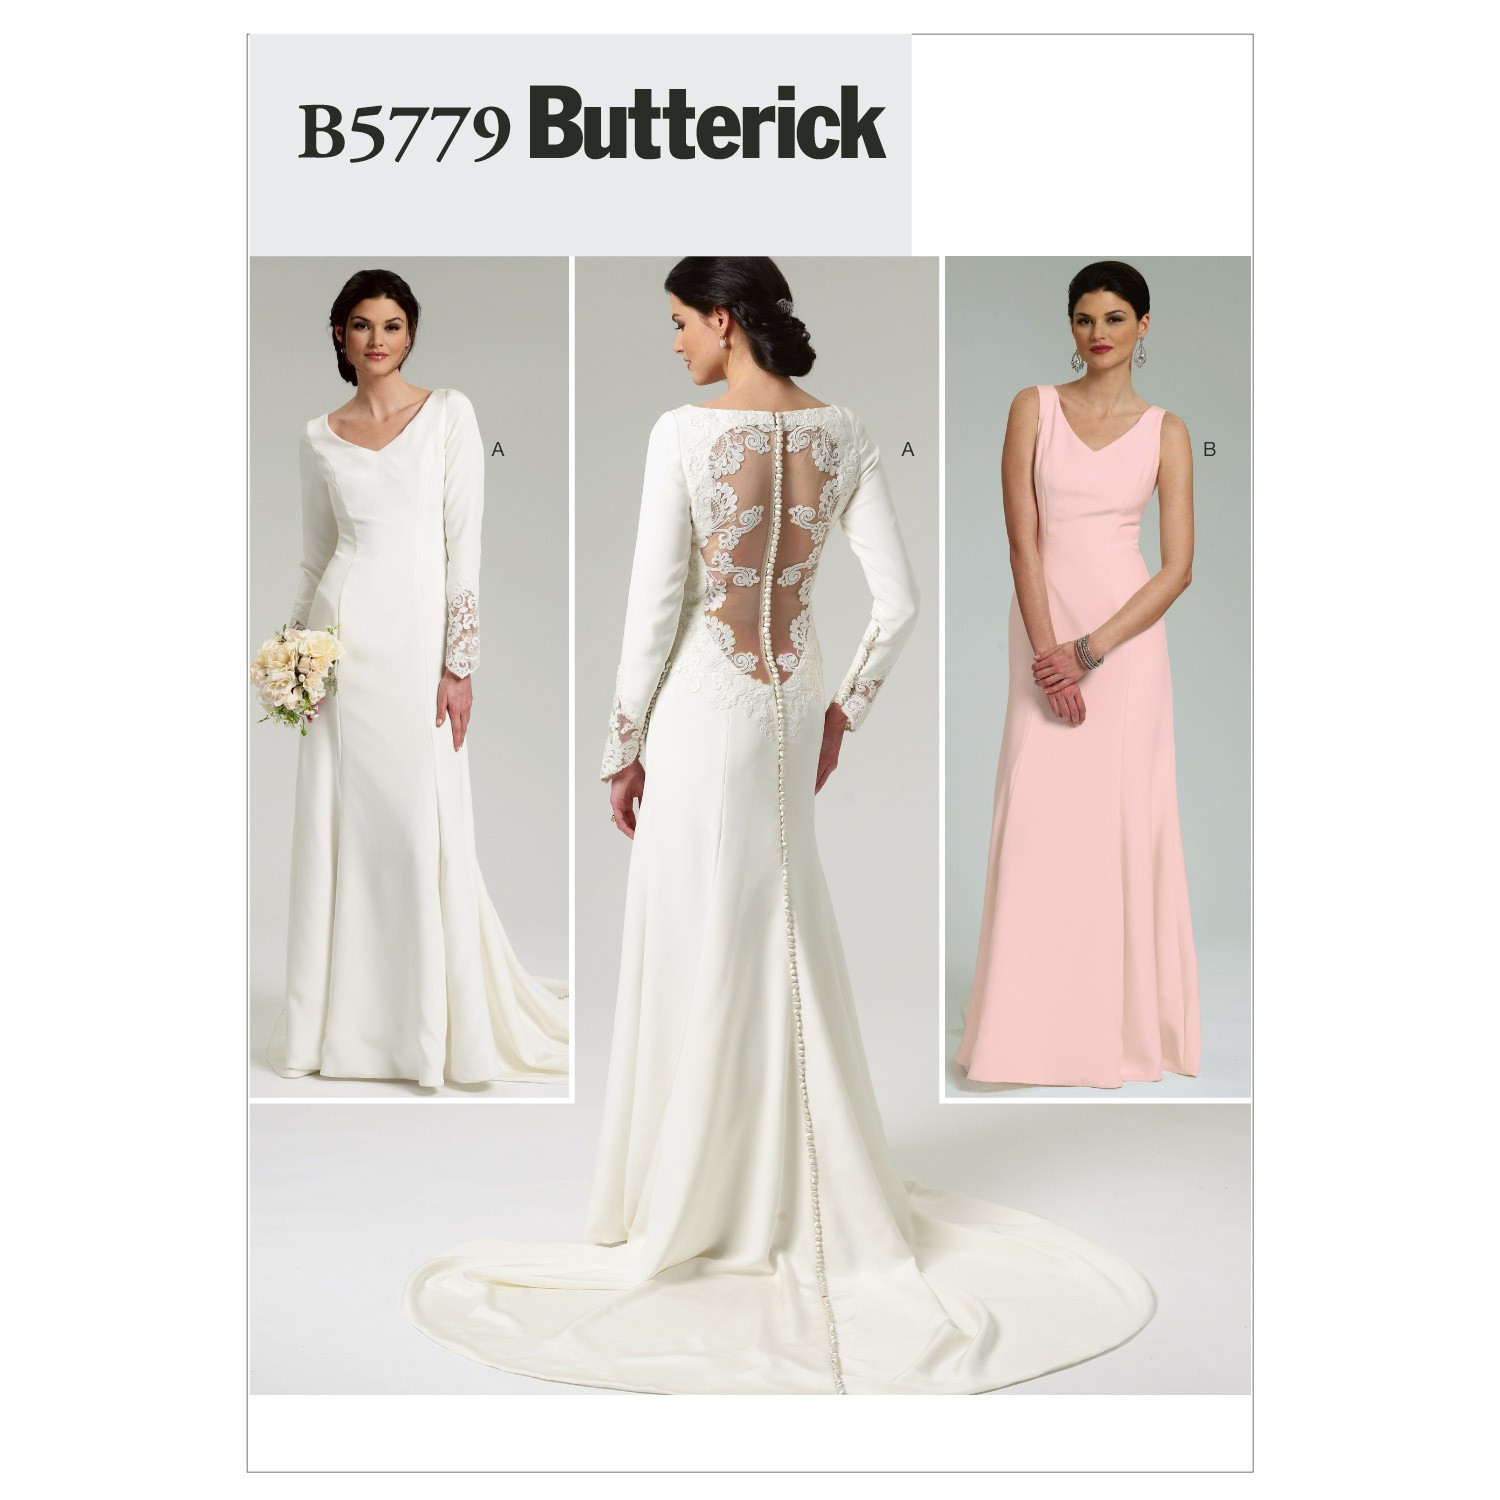 Wedding Dress Patterns Lovely Misses Bridal Gown butterick Pattern 5779 Of Incredible 44 Images Wedding Dress Patterns